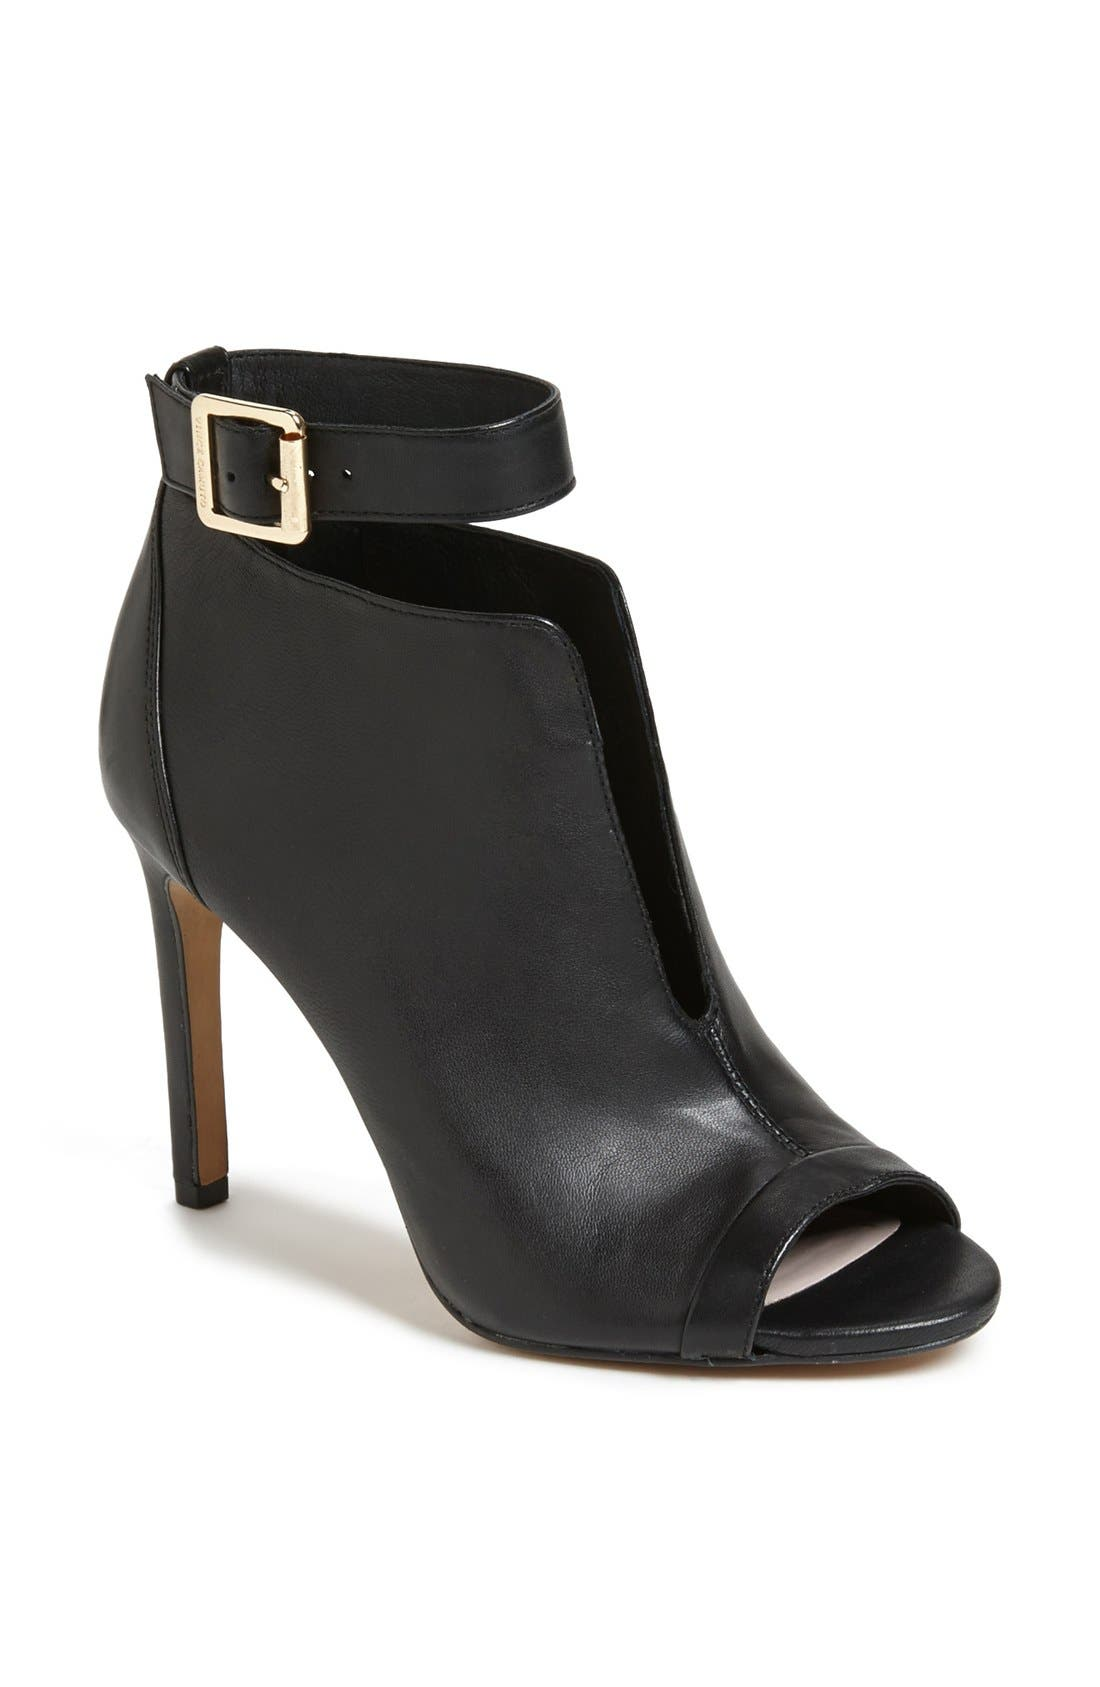 Alternate Image 1 Selected - Vince Camuto 'Kalisi' Bootie